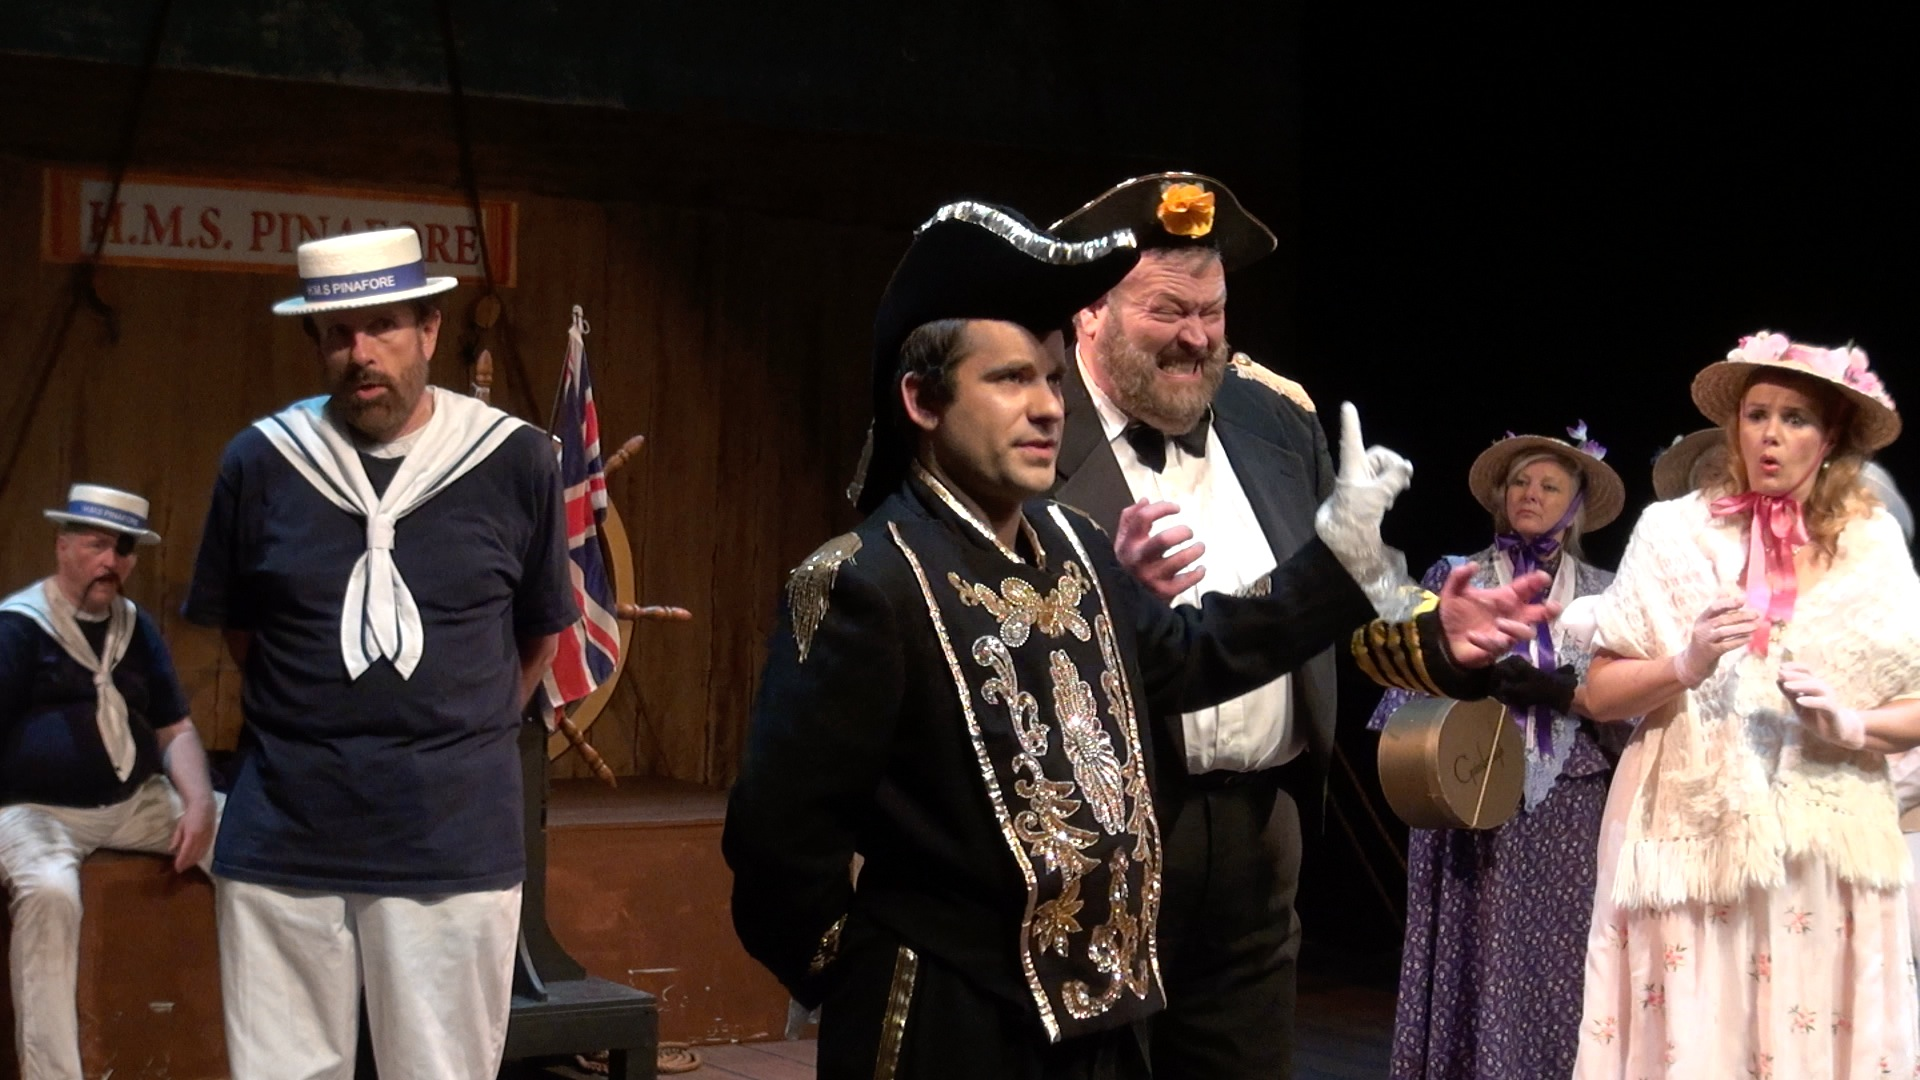 2015 HMS Pinafore DVD 3